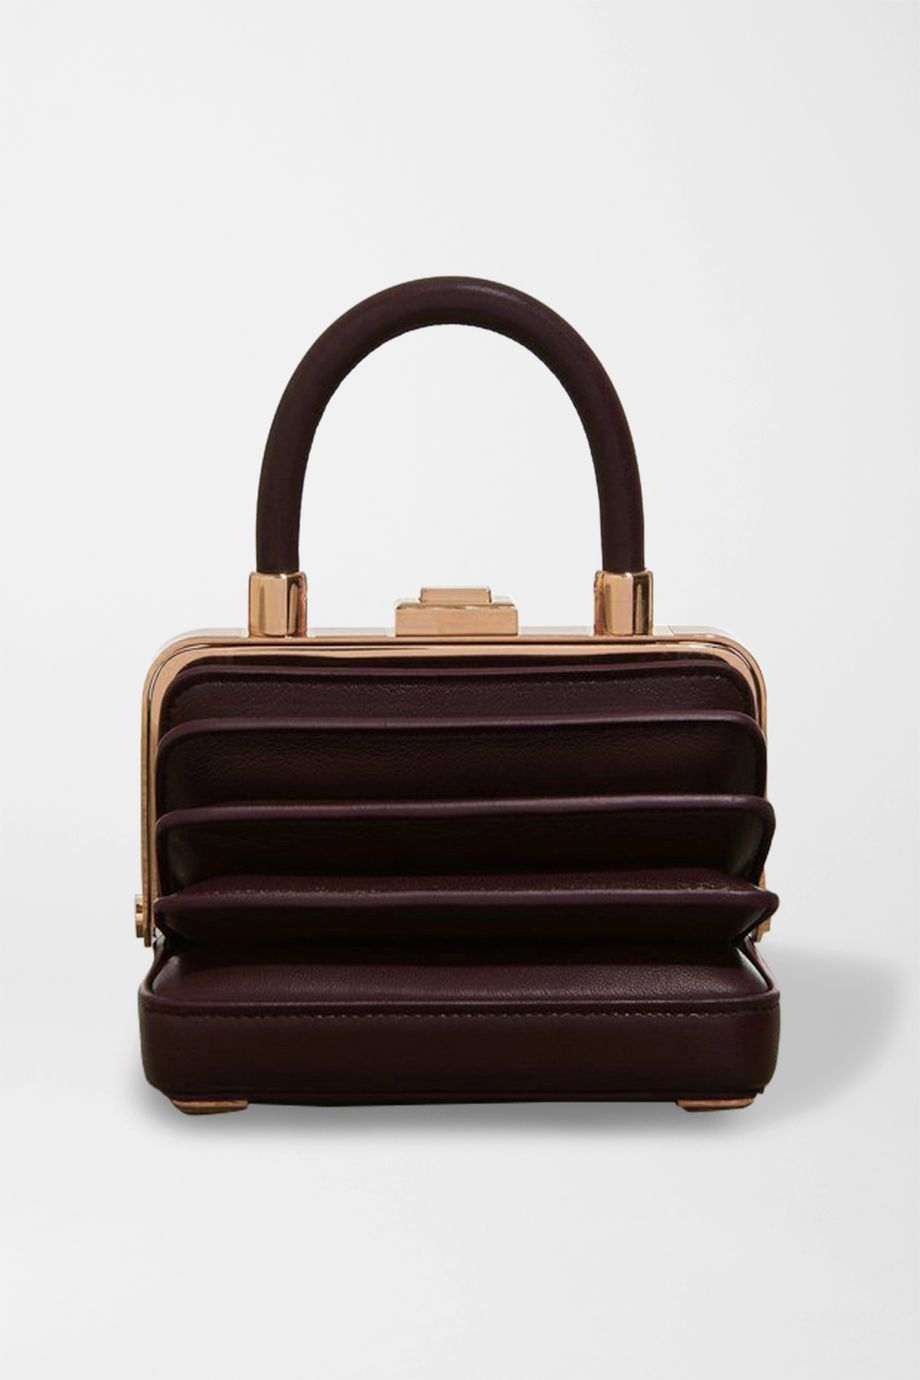 Gabriela Hearst Diana mini leather tote